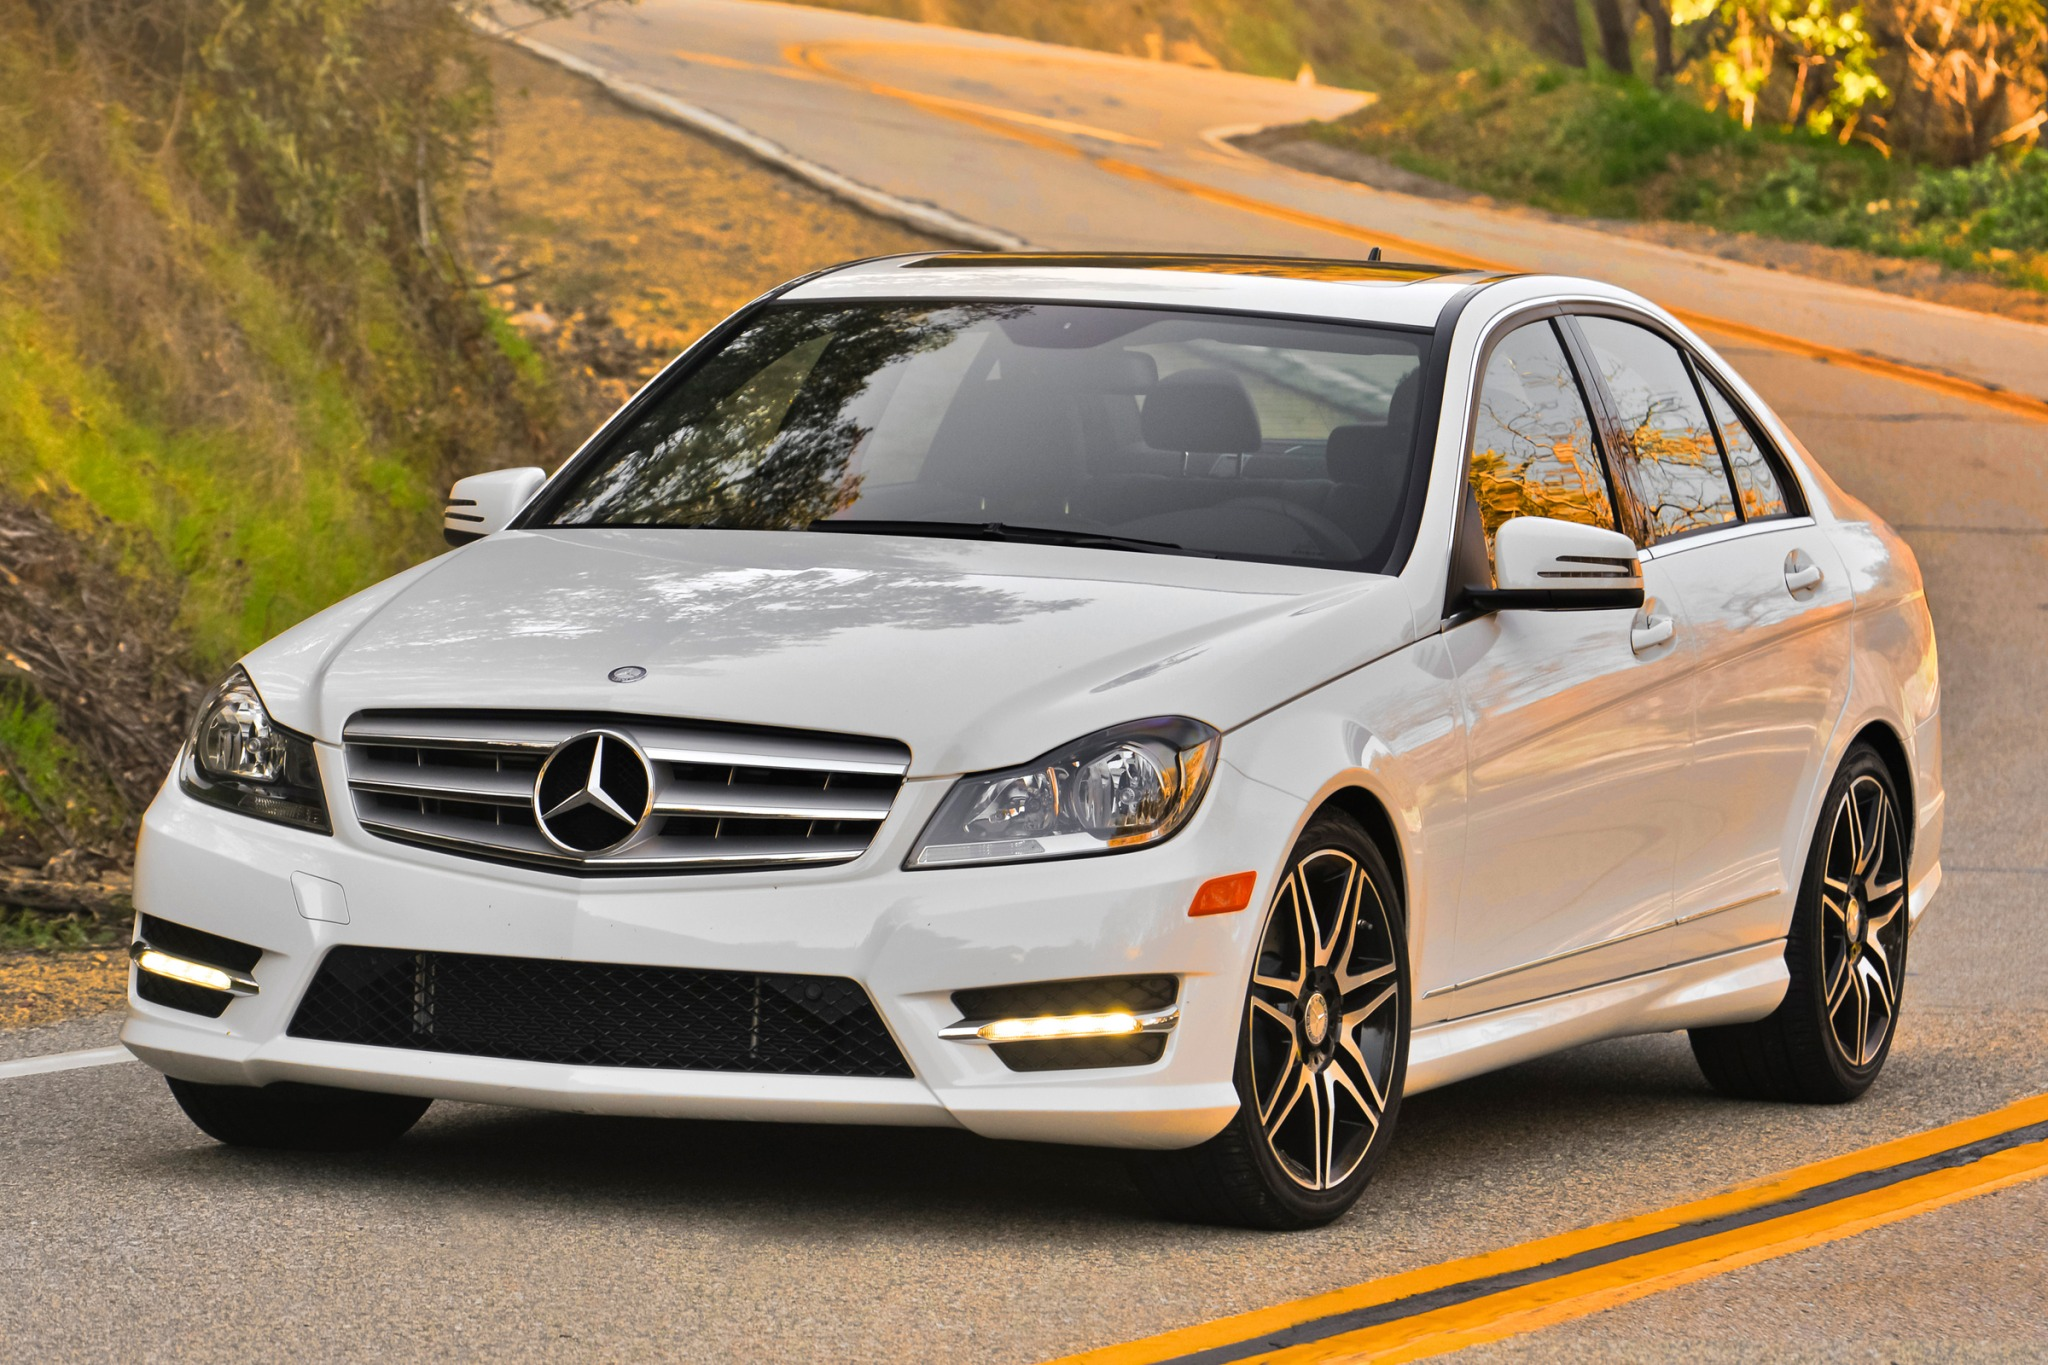 2014 mercedes benz c class image 4 for Mercedes benz schedule a